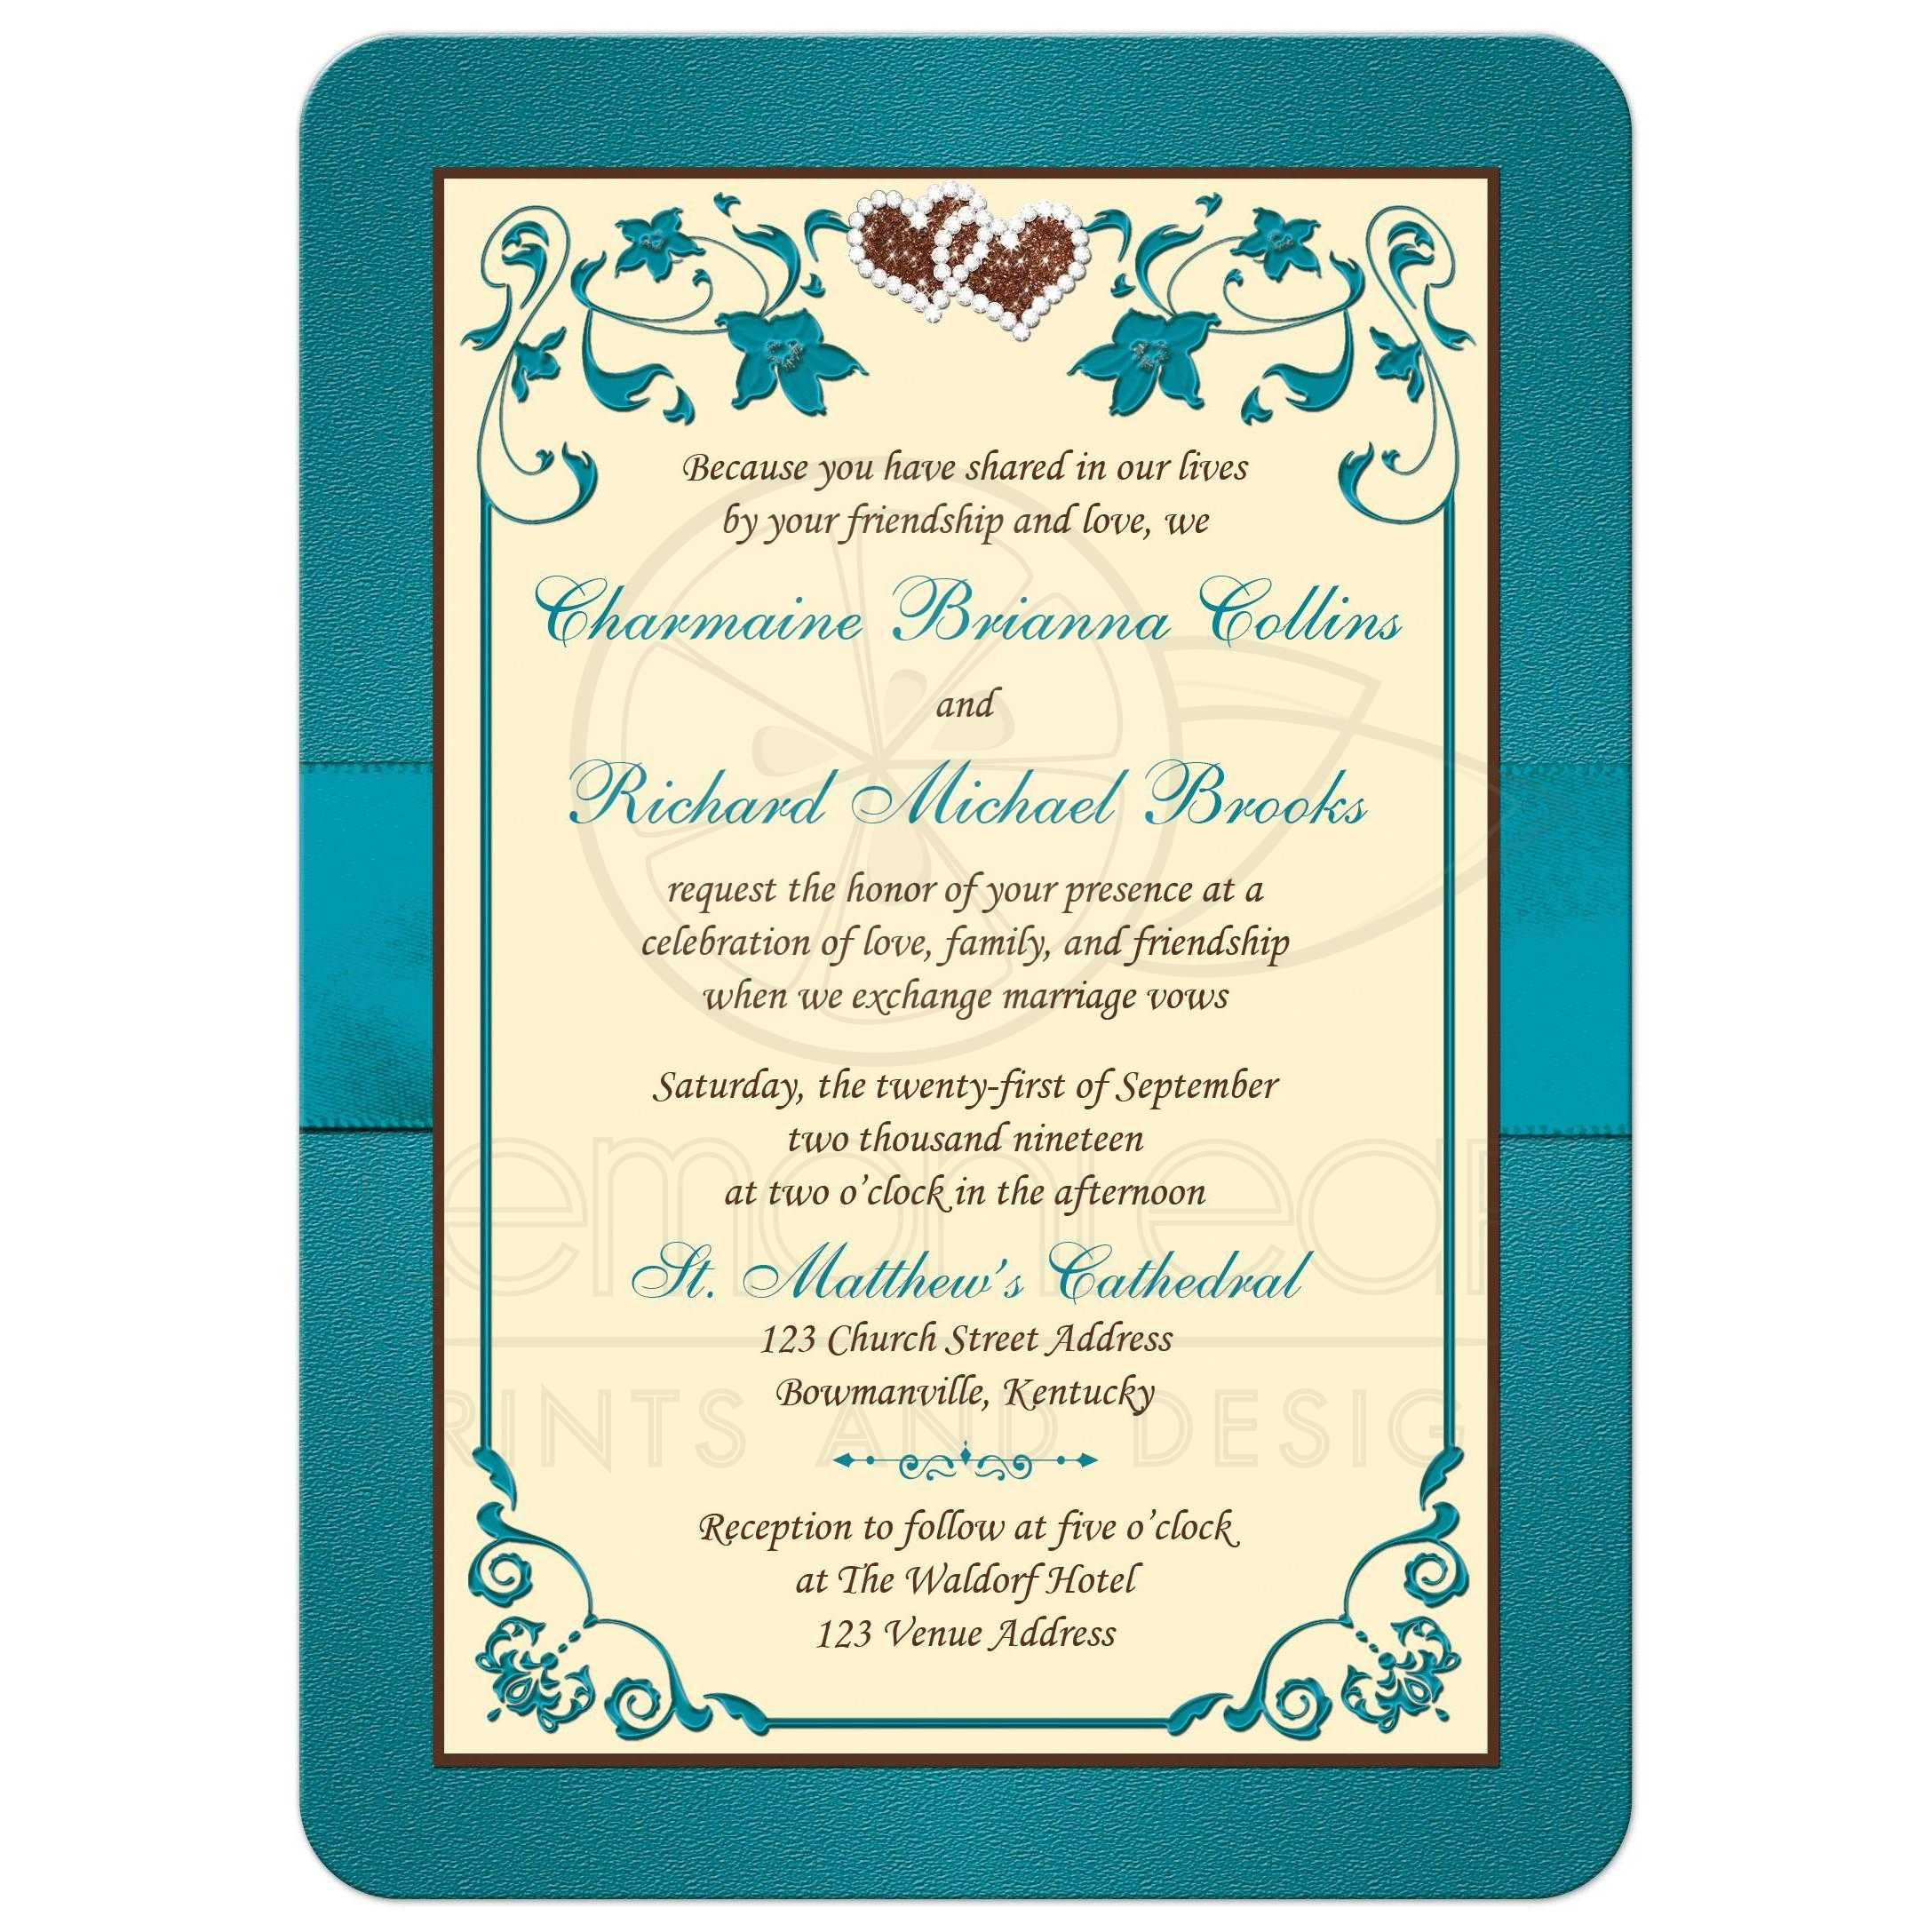 Teal Green Chocolate Brown And Cream Floral Wedding Invitations With Ribbon Bow: Chocolate Ivory Wedding Invitation At Reisefeber.org